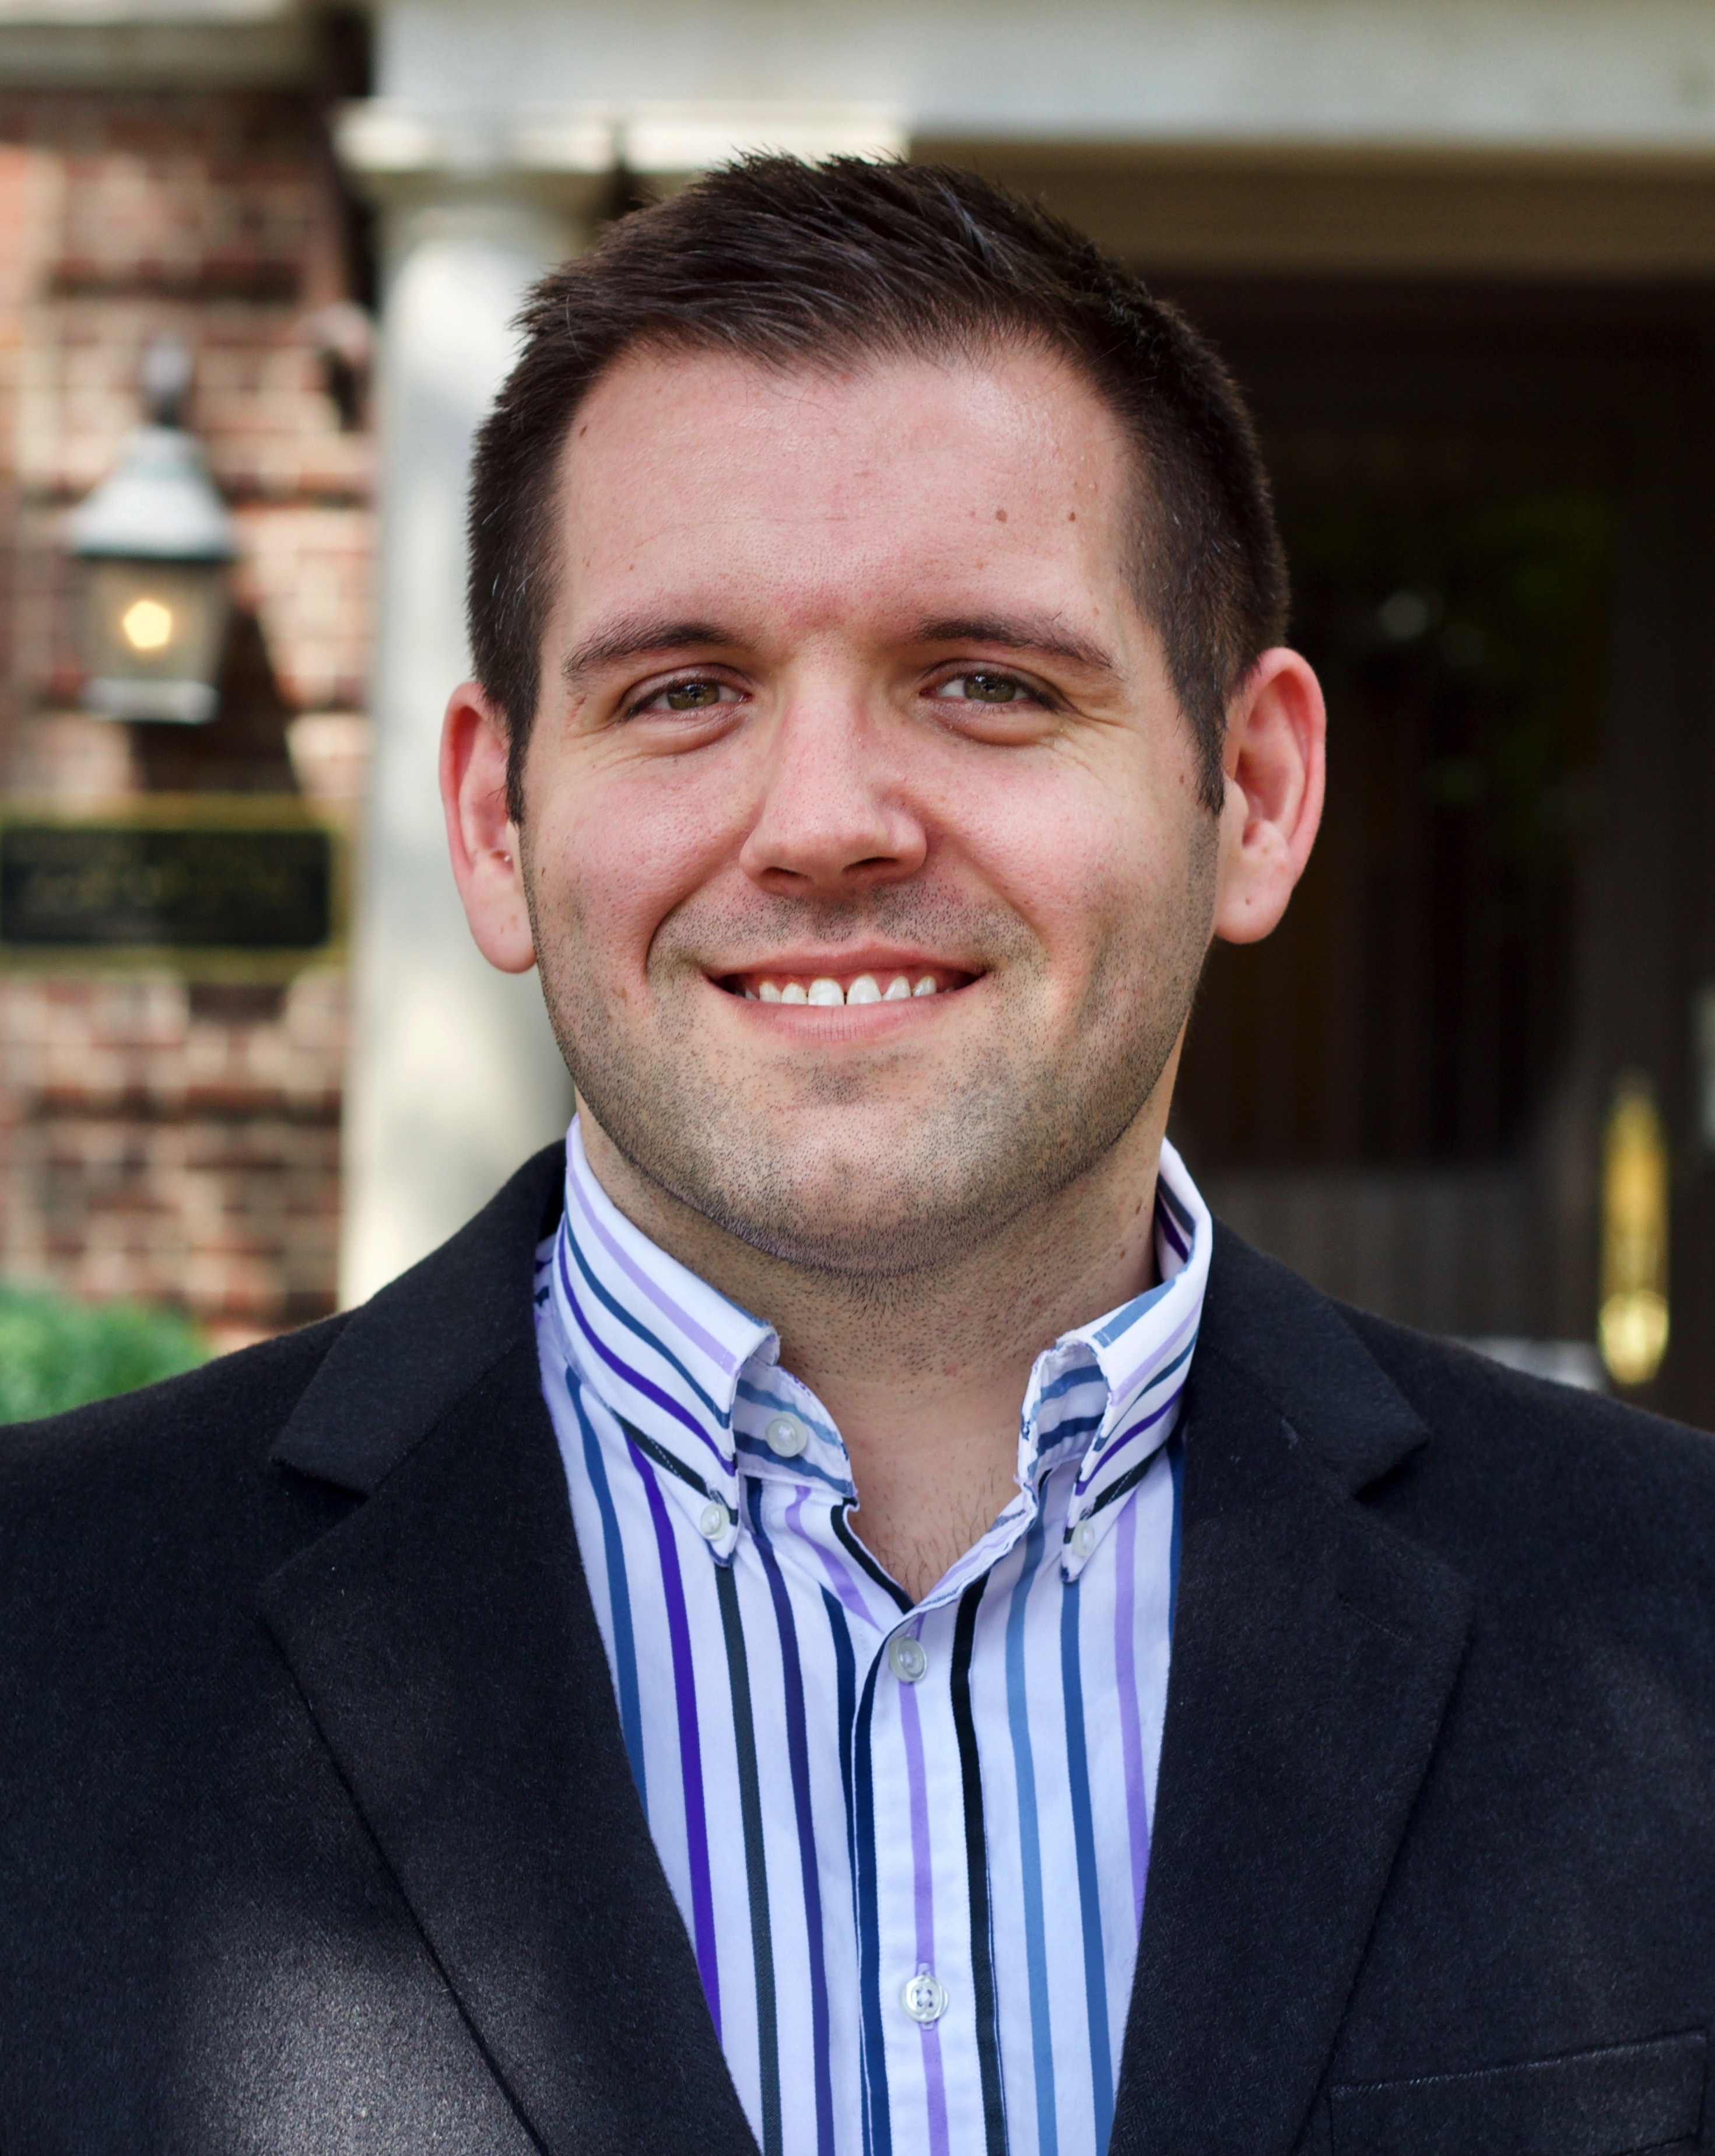 Jason Davis, Programs and Corporate Relations Manager